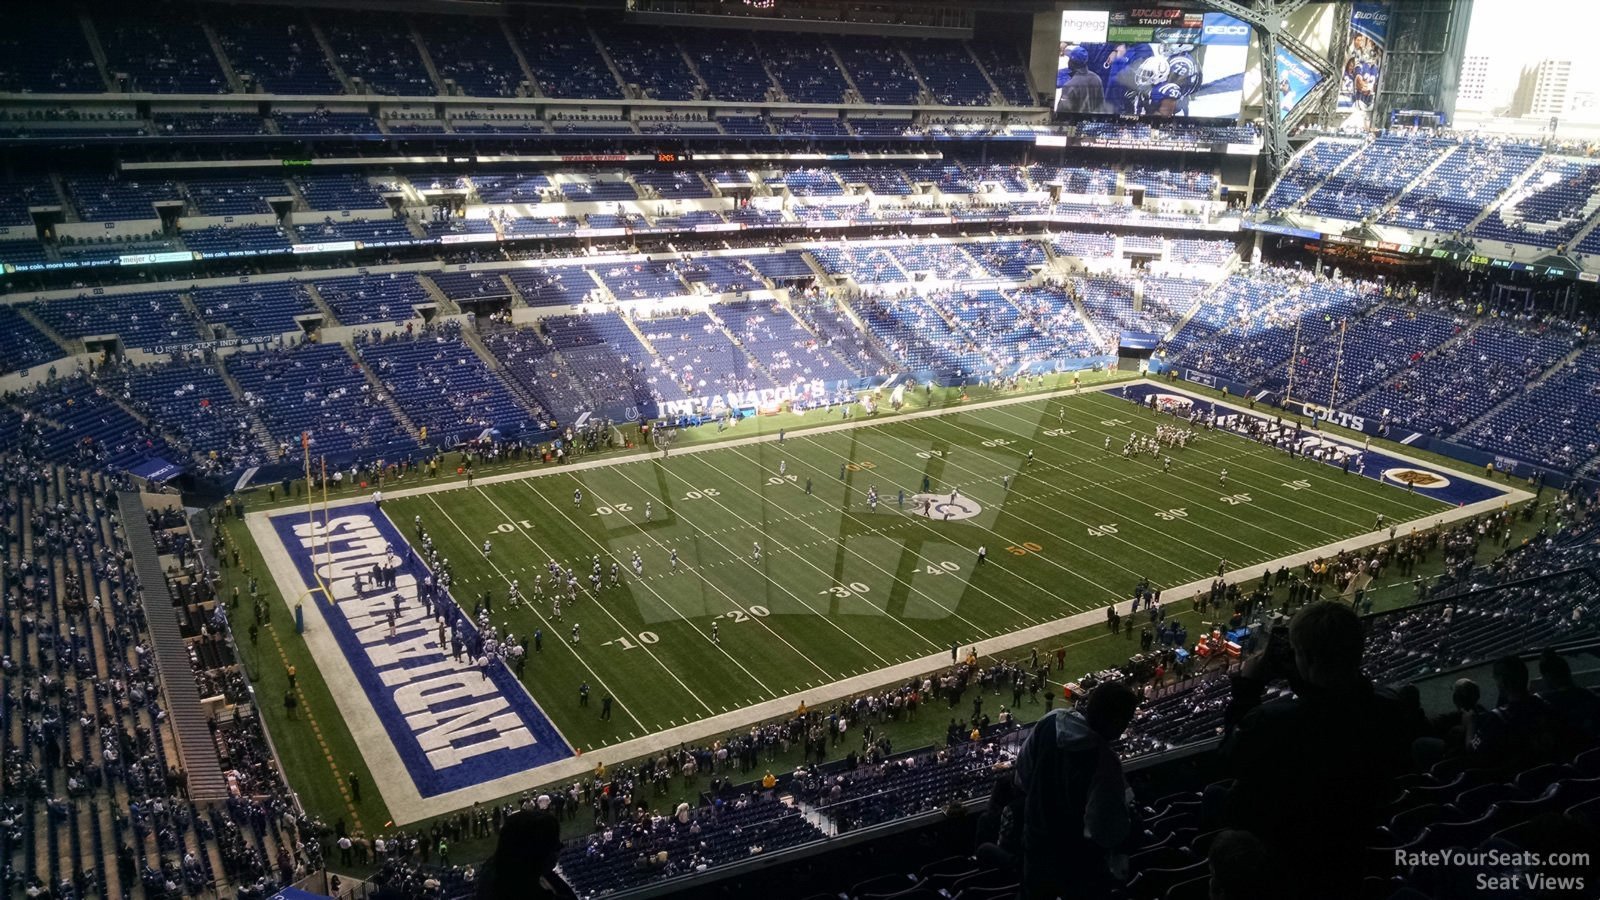 Section 618 seat view